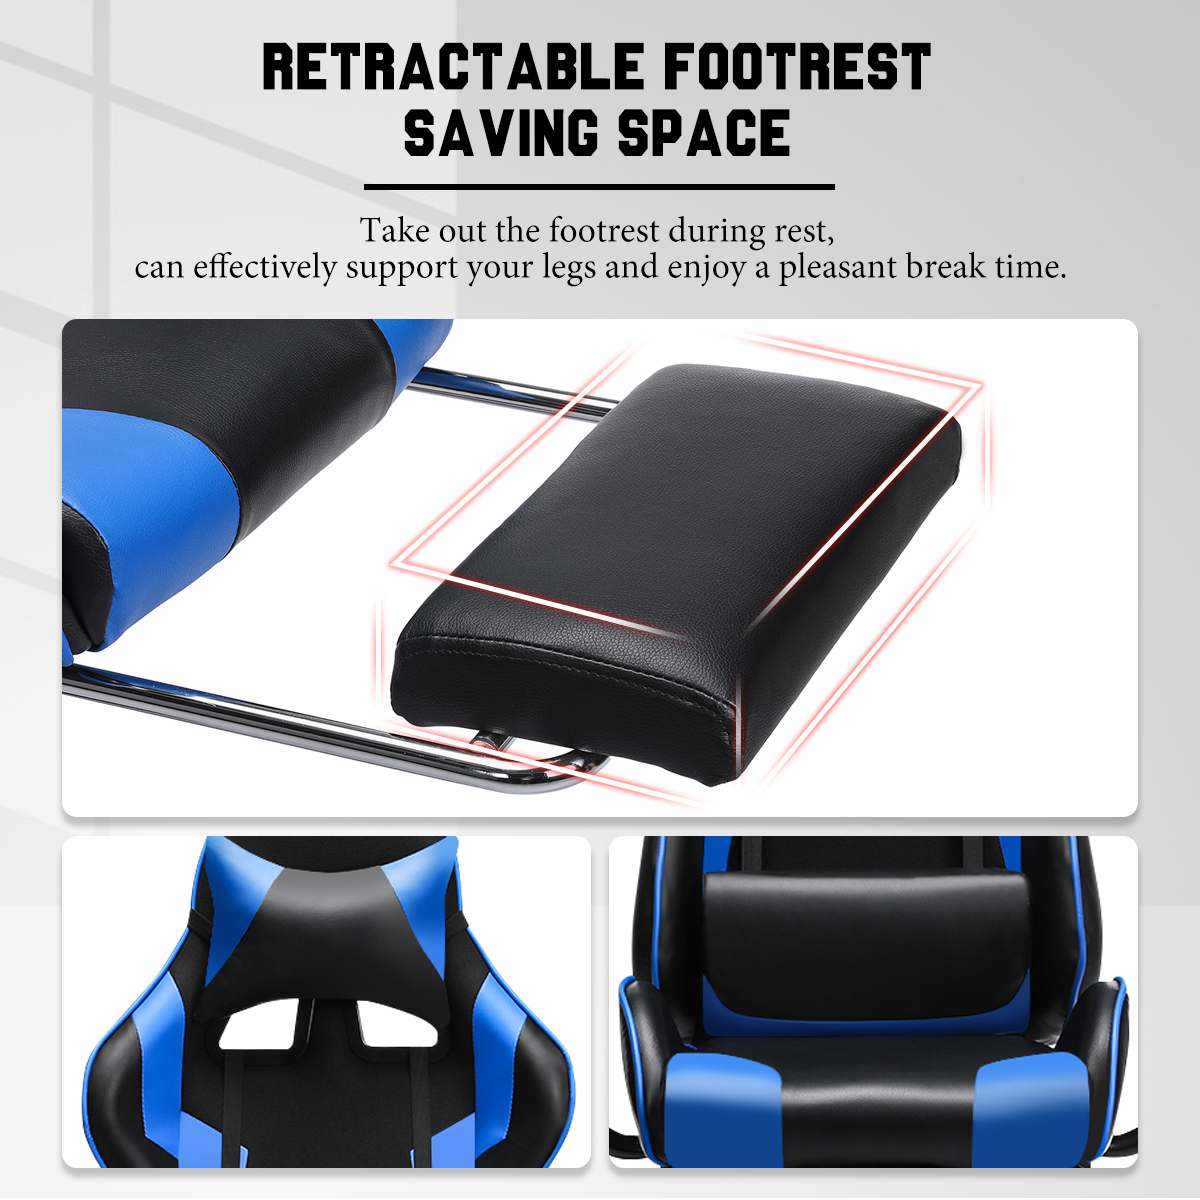 H95ee7091b0cb4d6e9d7504e7c80ea233k - 155° Gaming Chairs with Footrest Ergonomic Office Chair Adjustable Swivel Leather High Back Computer Desk Chair with Headrest